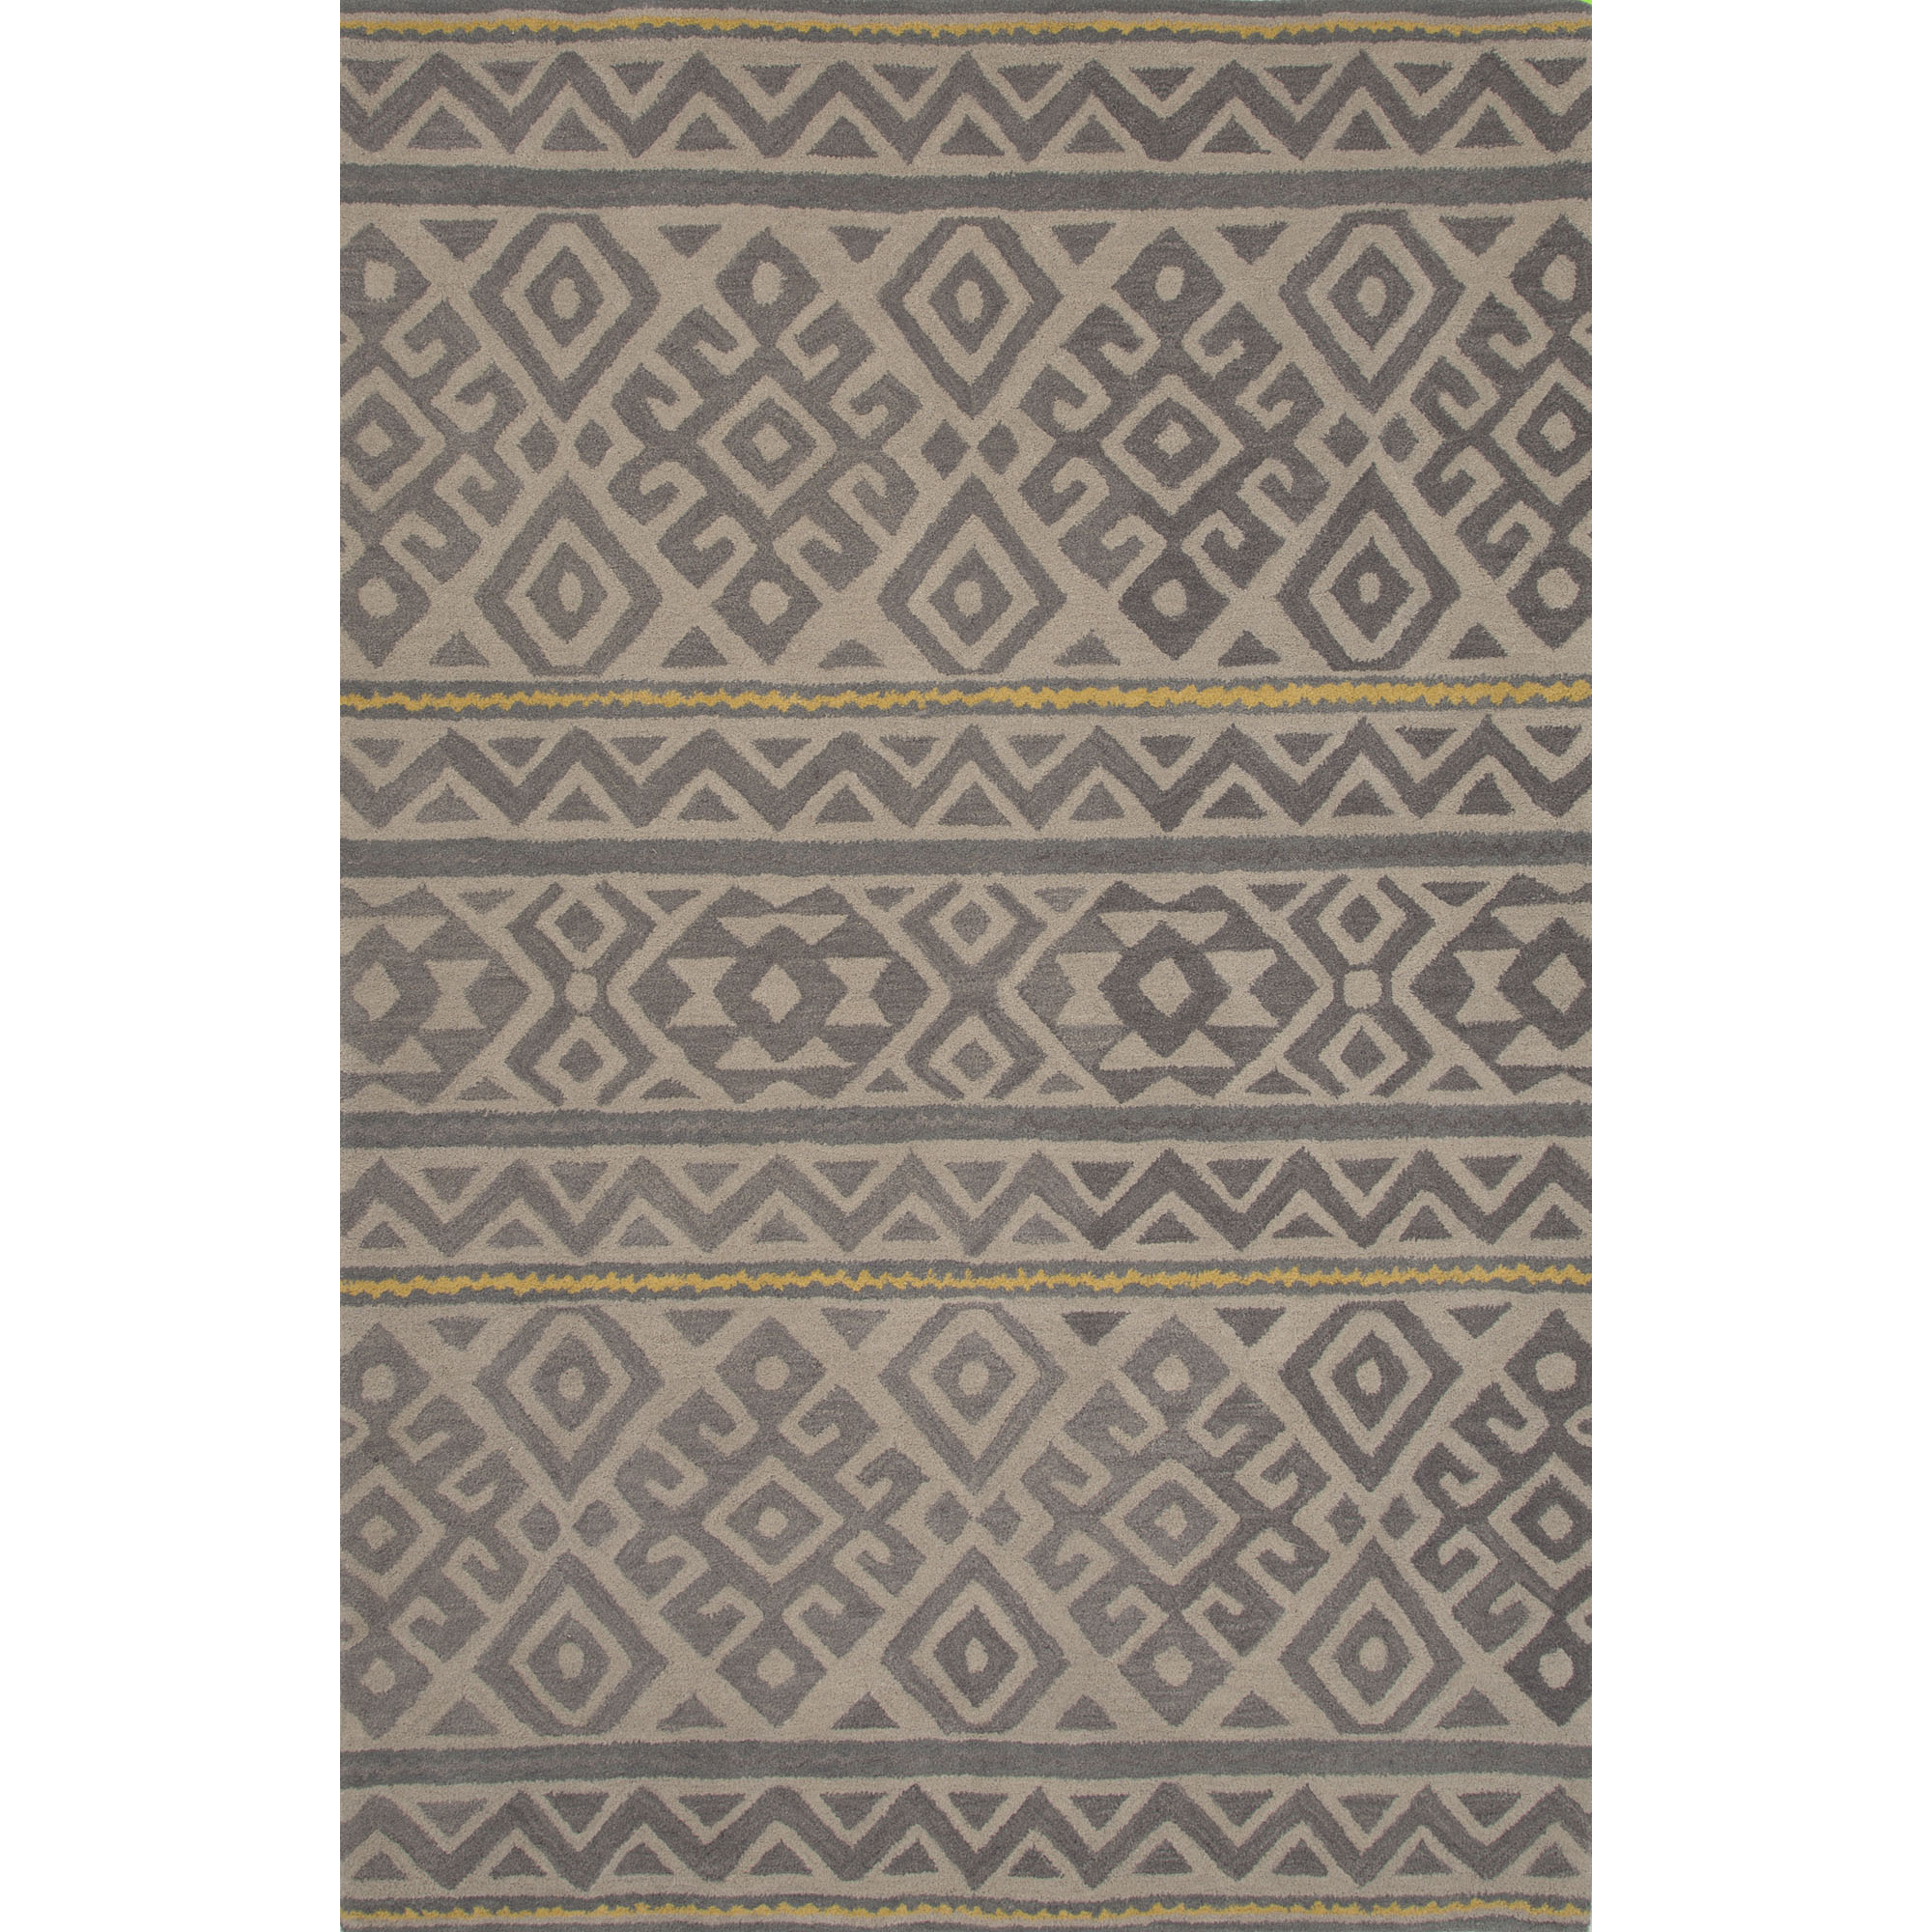 JAIPUR Rugs Traditions Made Modern Tufted 8 x 11 Rug - Item Number: RUG122209